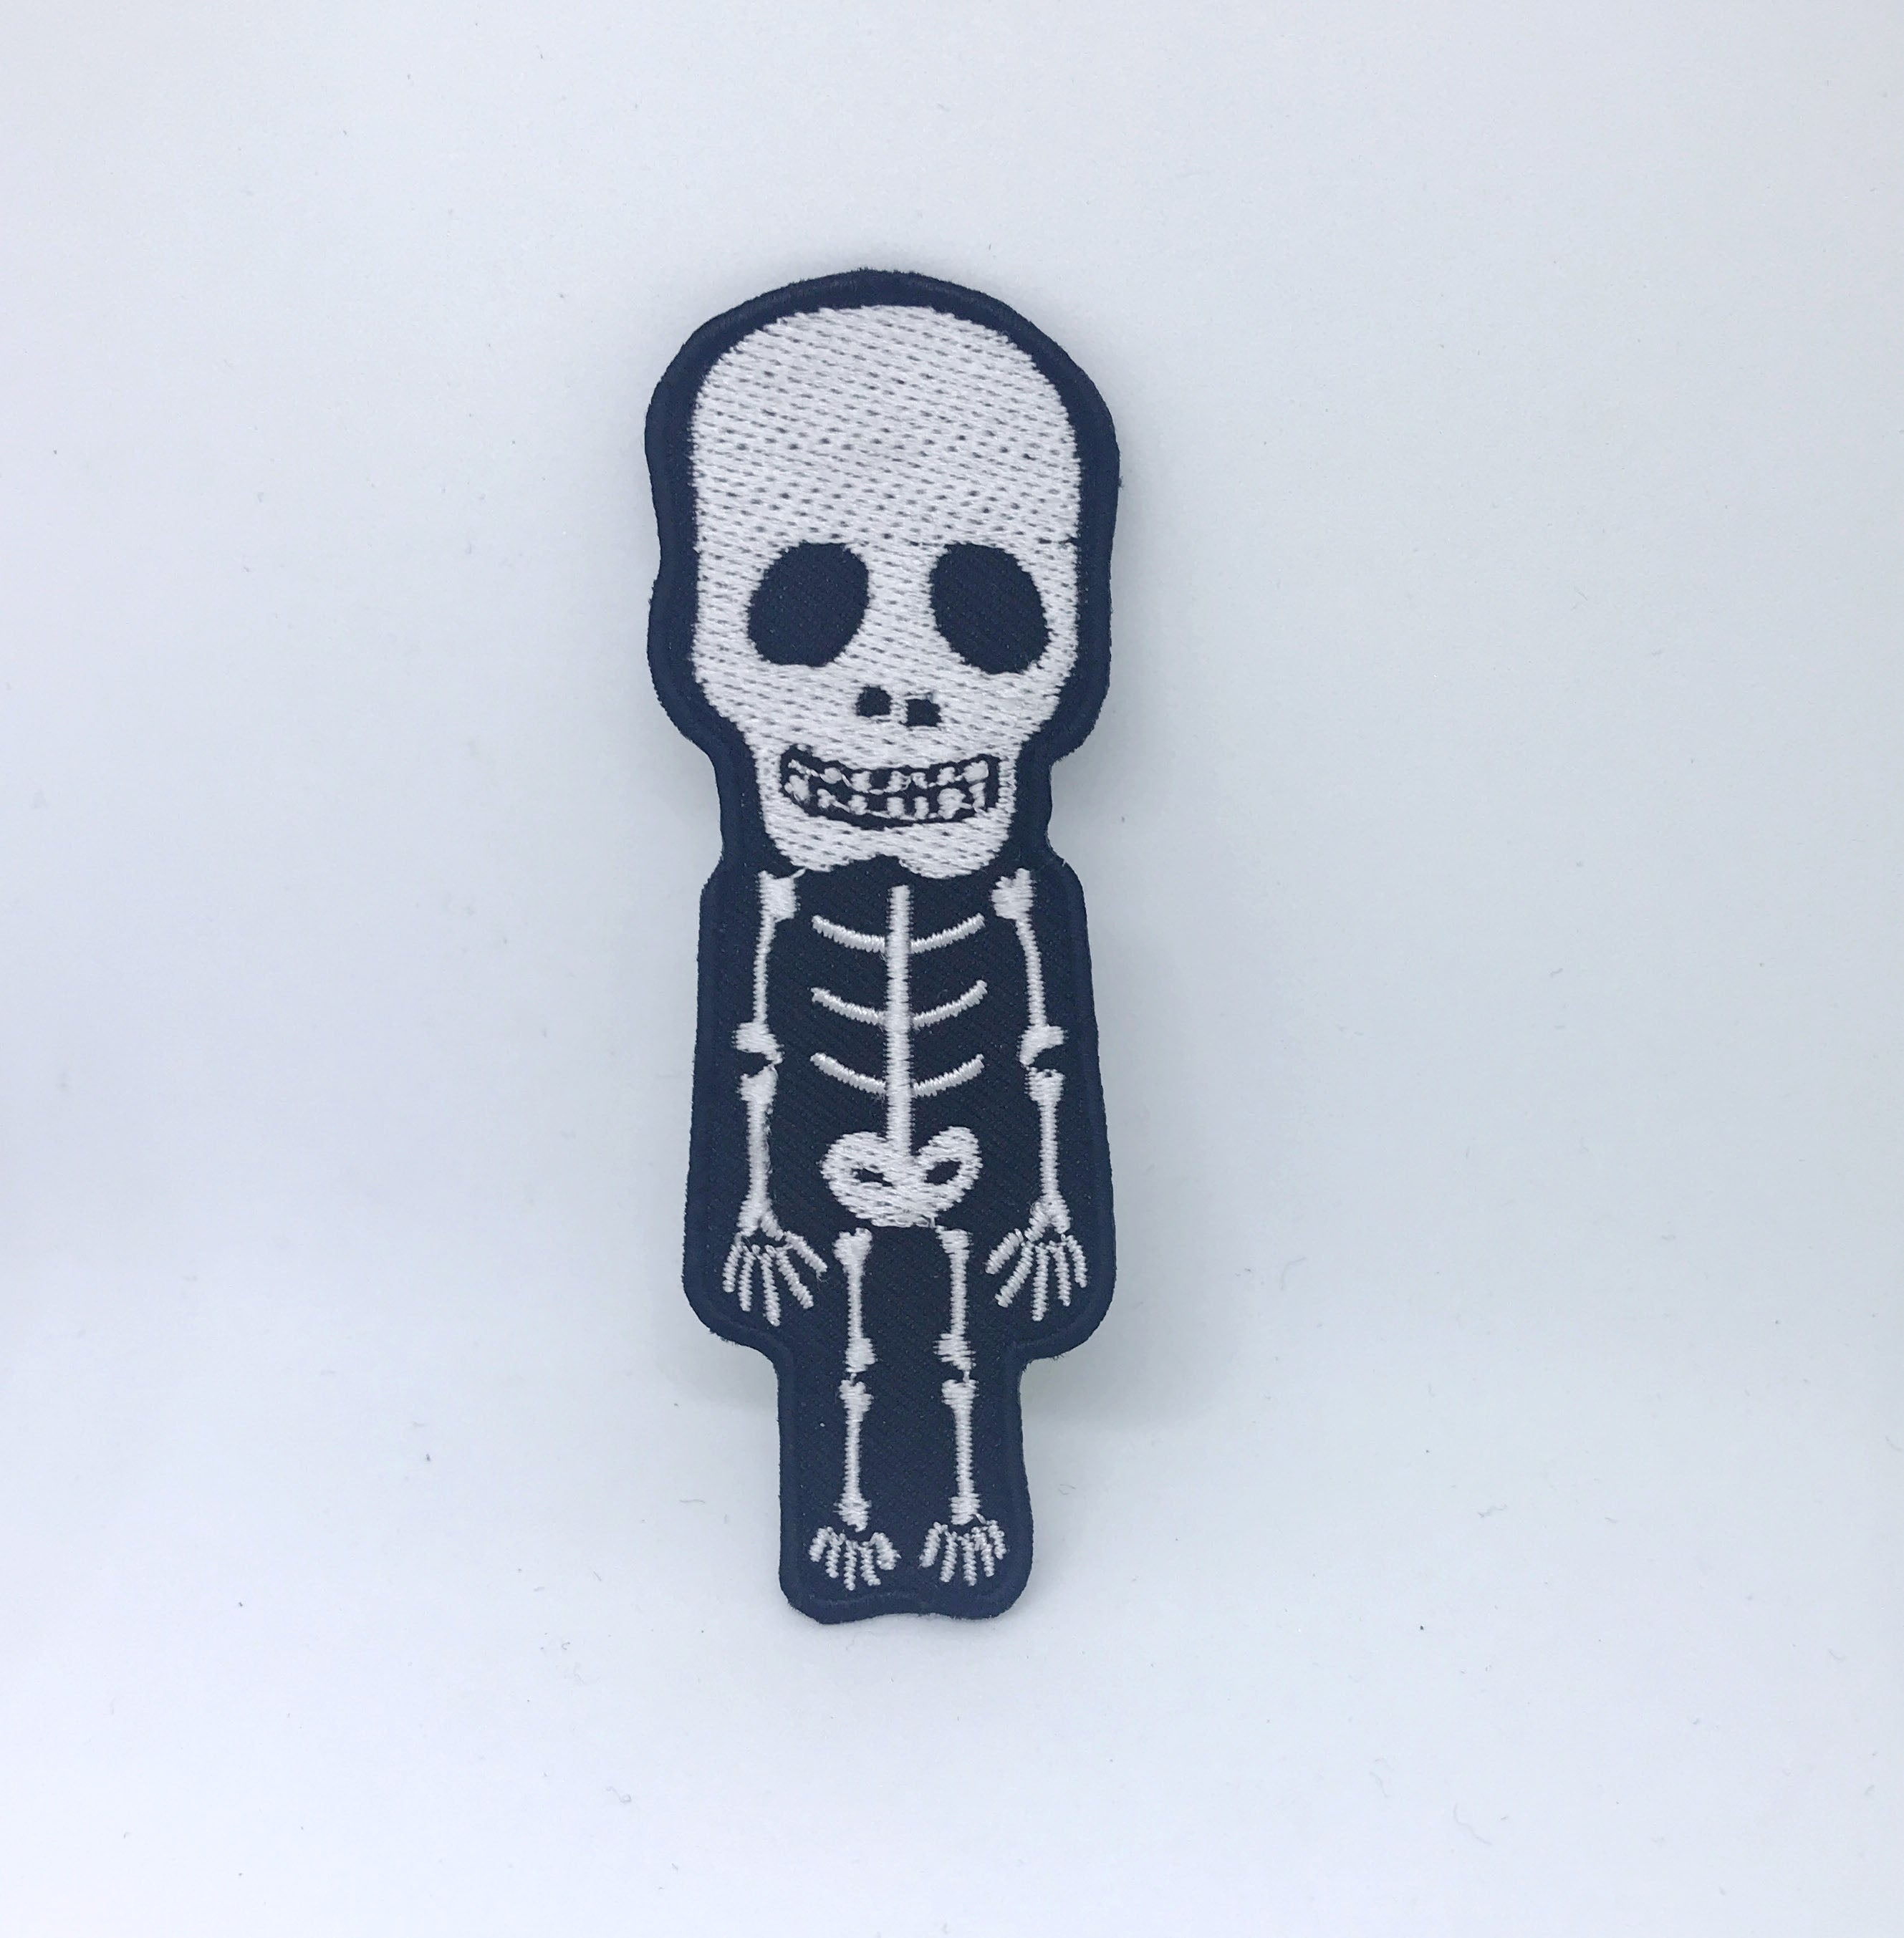 CUTE Skull Skeleton Biker Rock Goth Emo BOW Embroidered Sew Iron On Patch - White